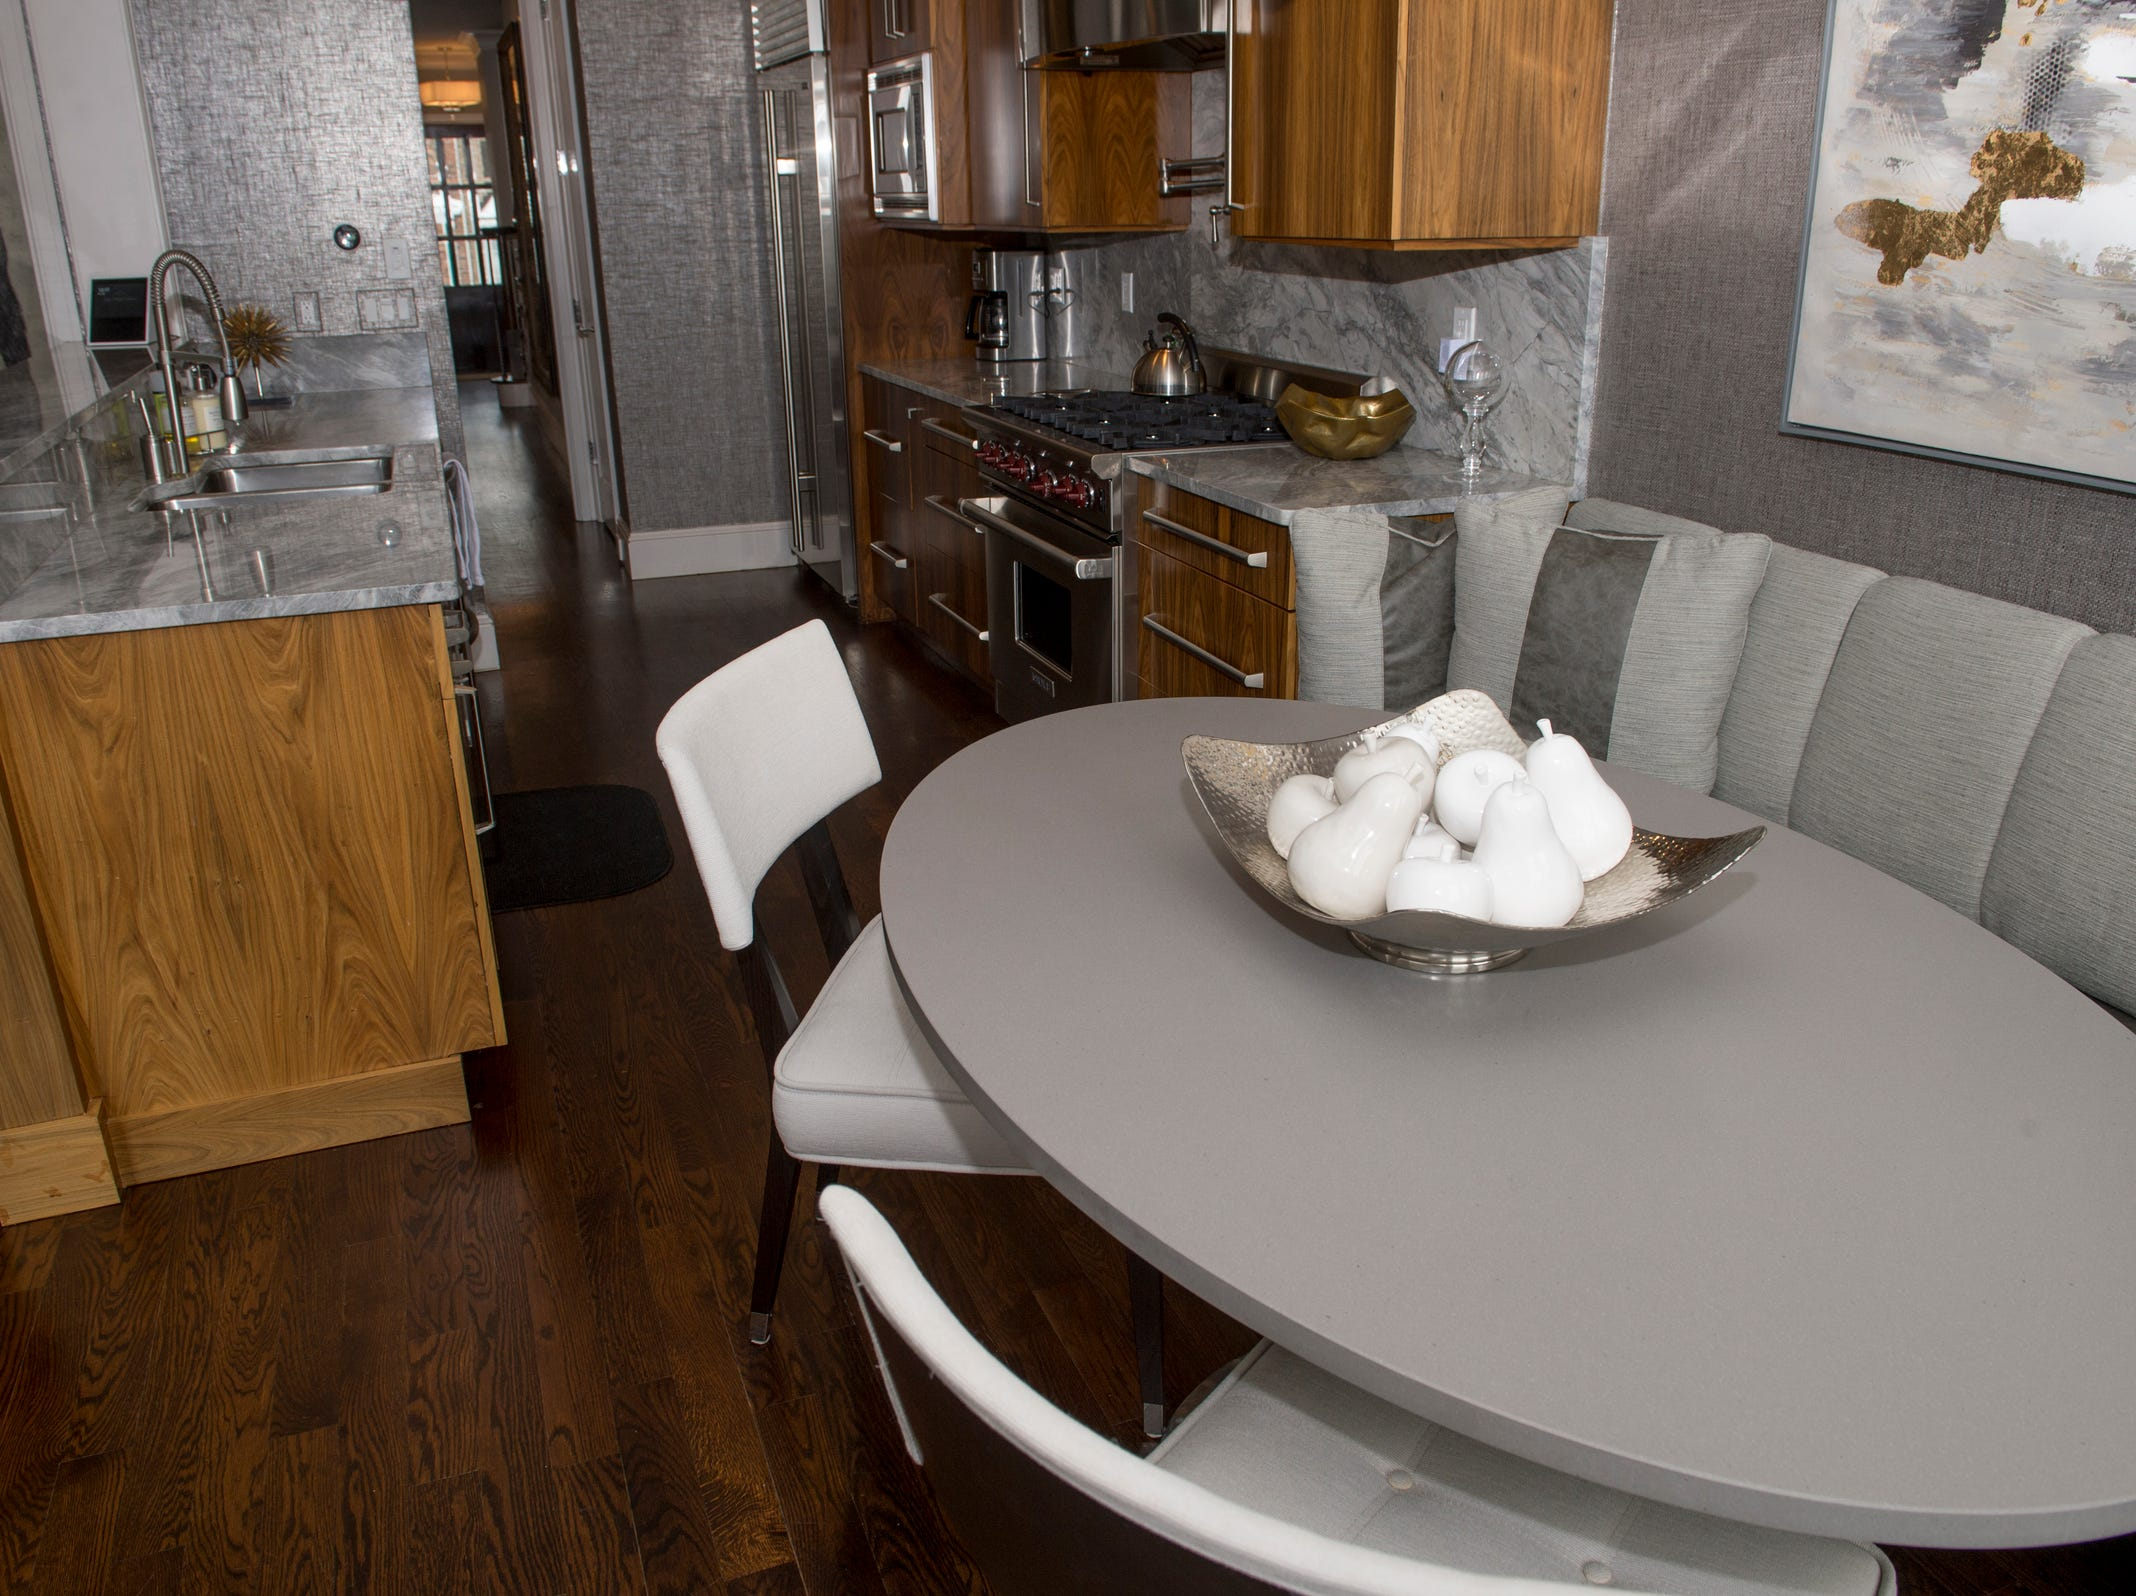 The kitchen includes a dining area and all the usual appliances.